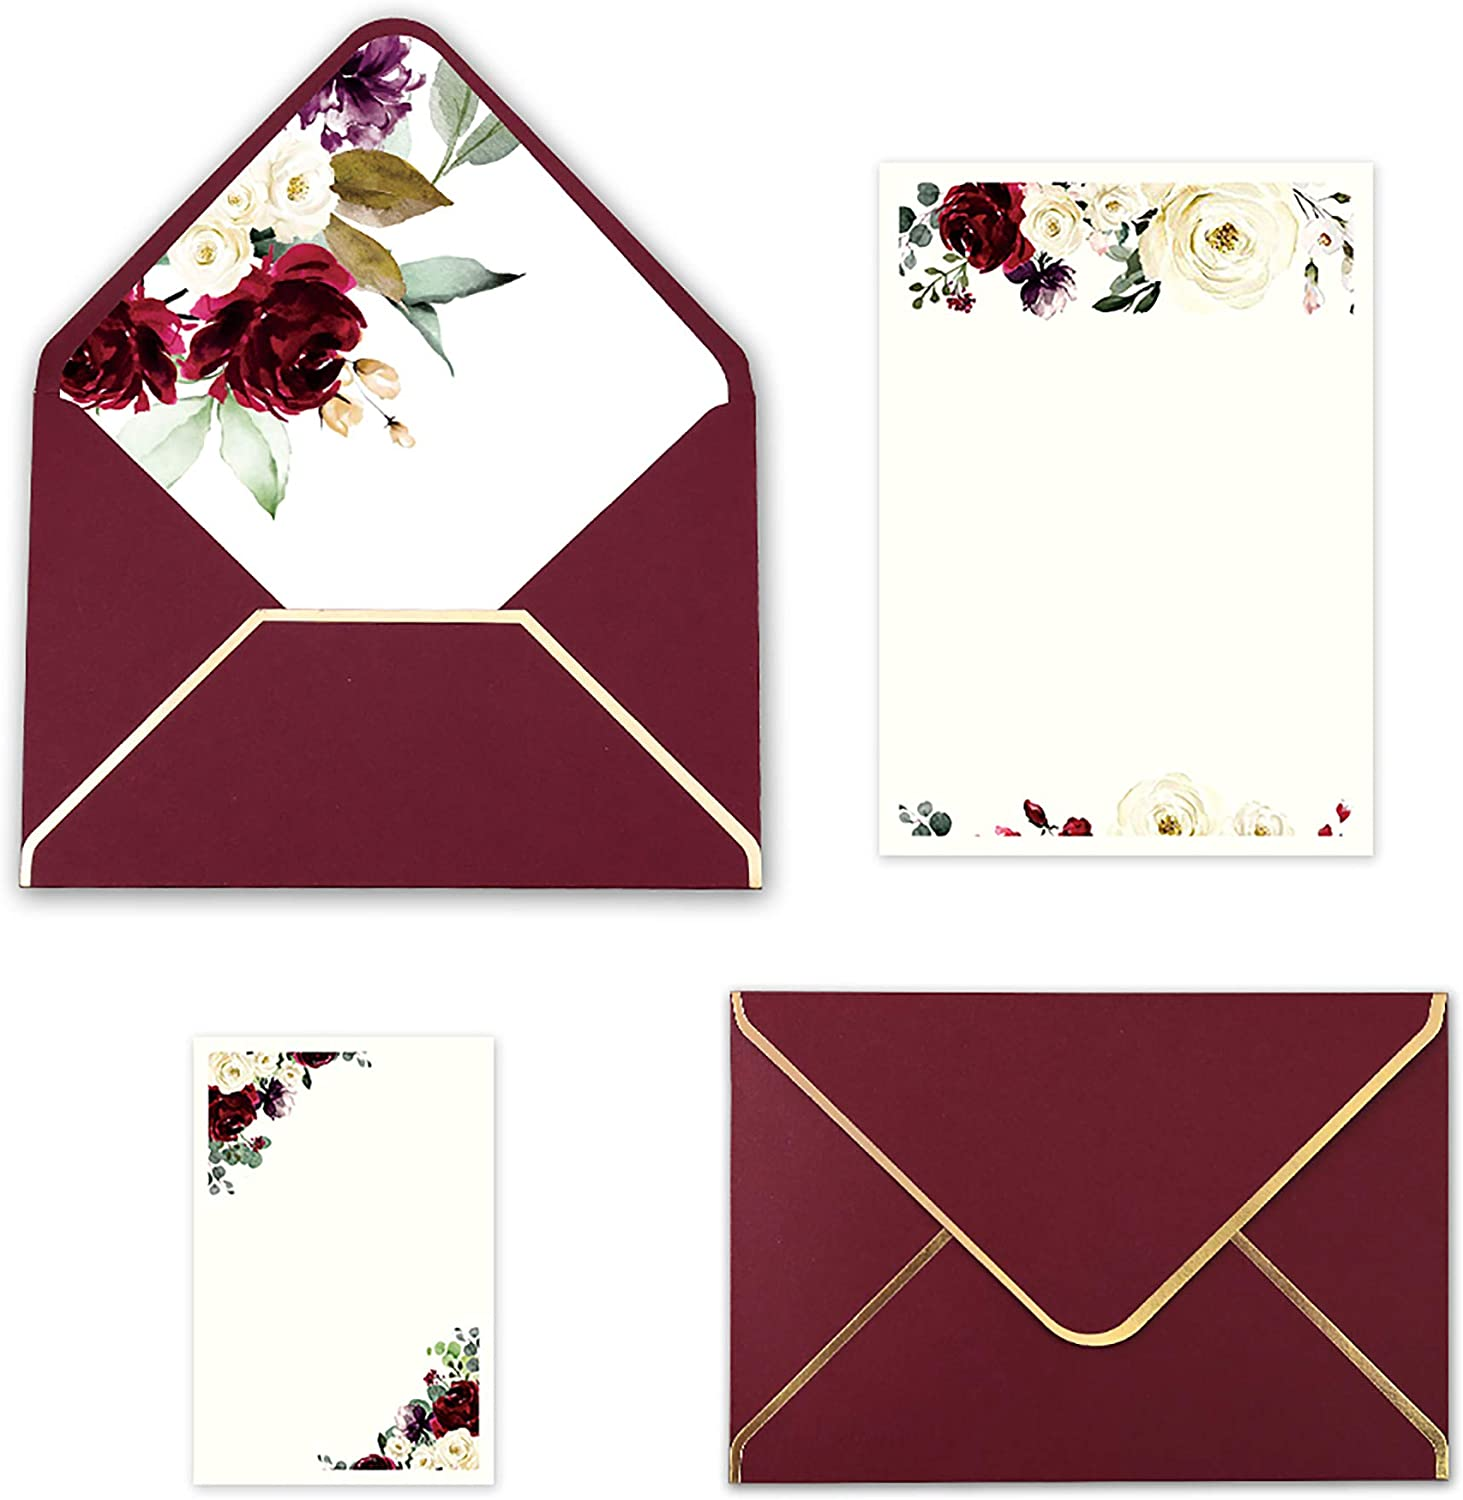 Doris Home 25pcs Burgundy Invitations Cards with Eucalyptus leaves Printed Inner Sheets and Envelope with with Gold Border for Wedding,Engagement Invite (Burgundy, Blank with flower)